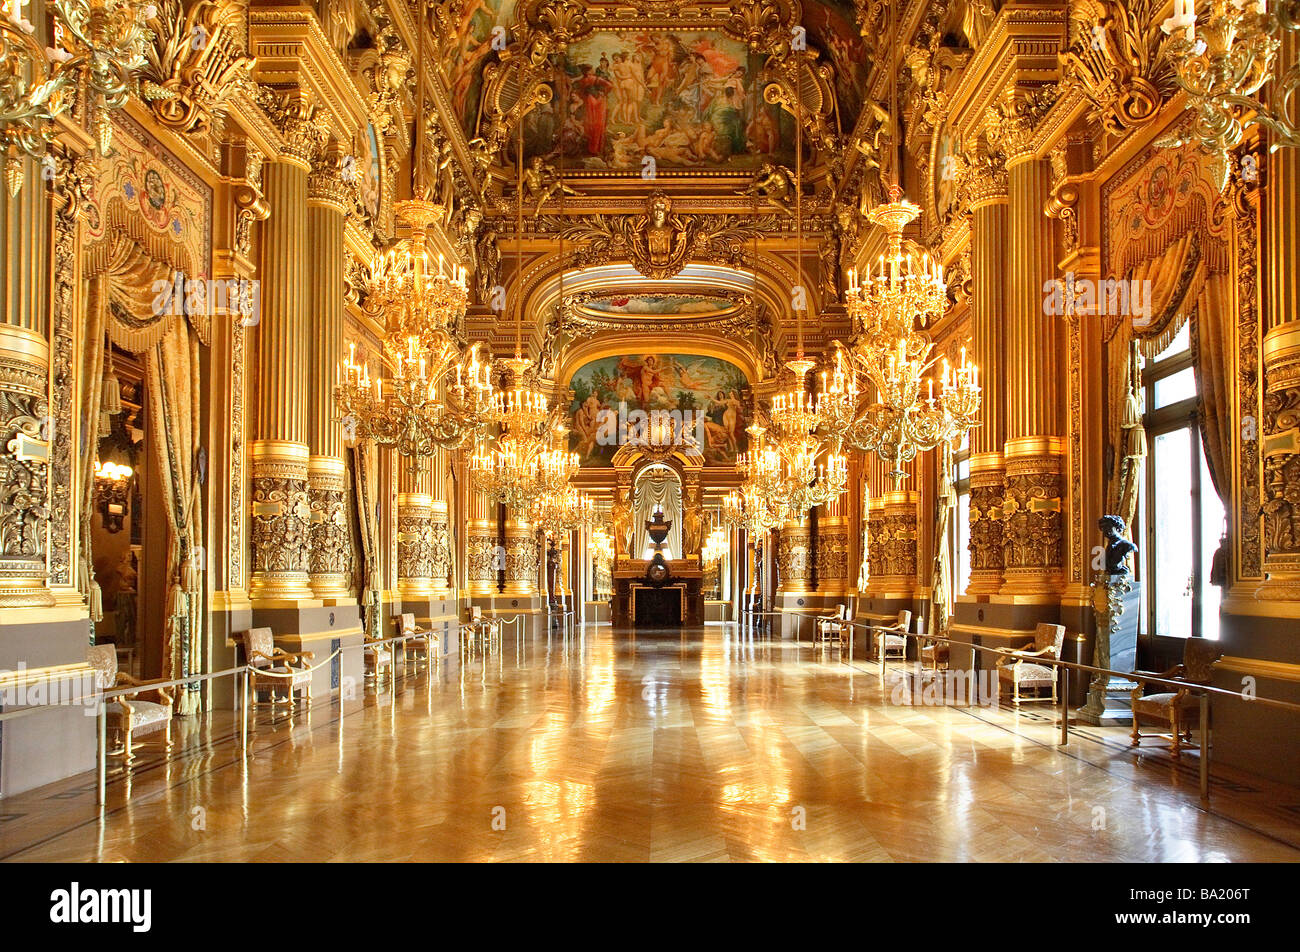 Le Grand Foyer Opera Garnier : Grand foyer opera garnier paris stock photo royalty free